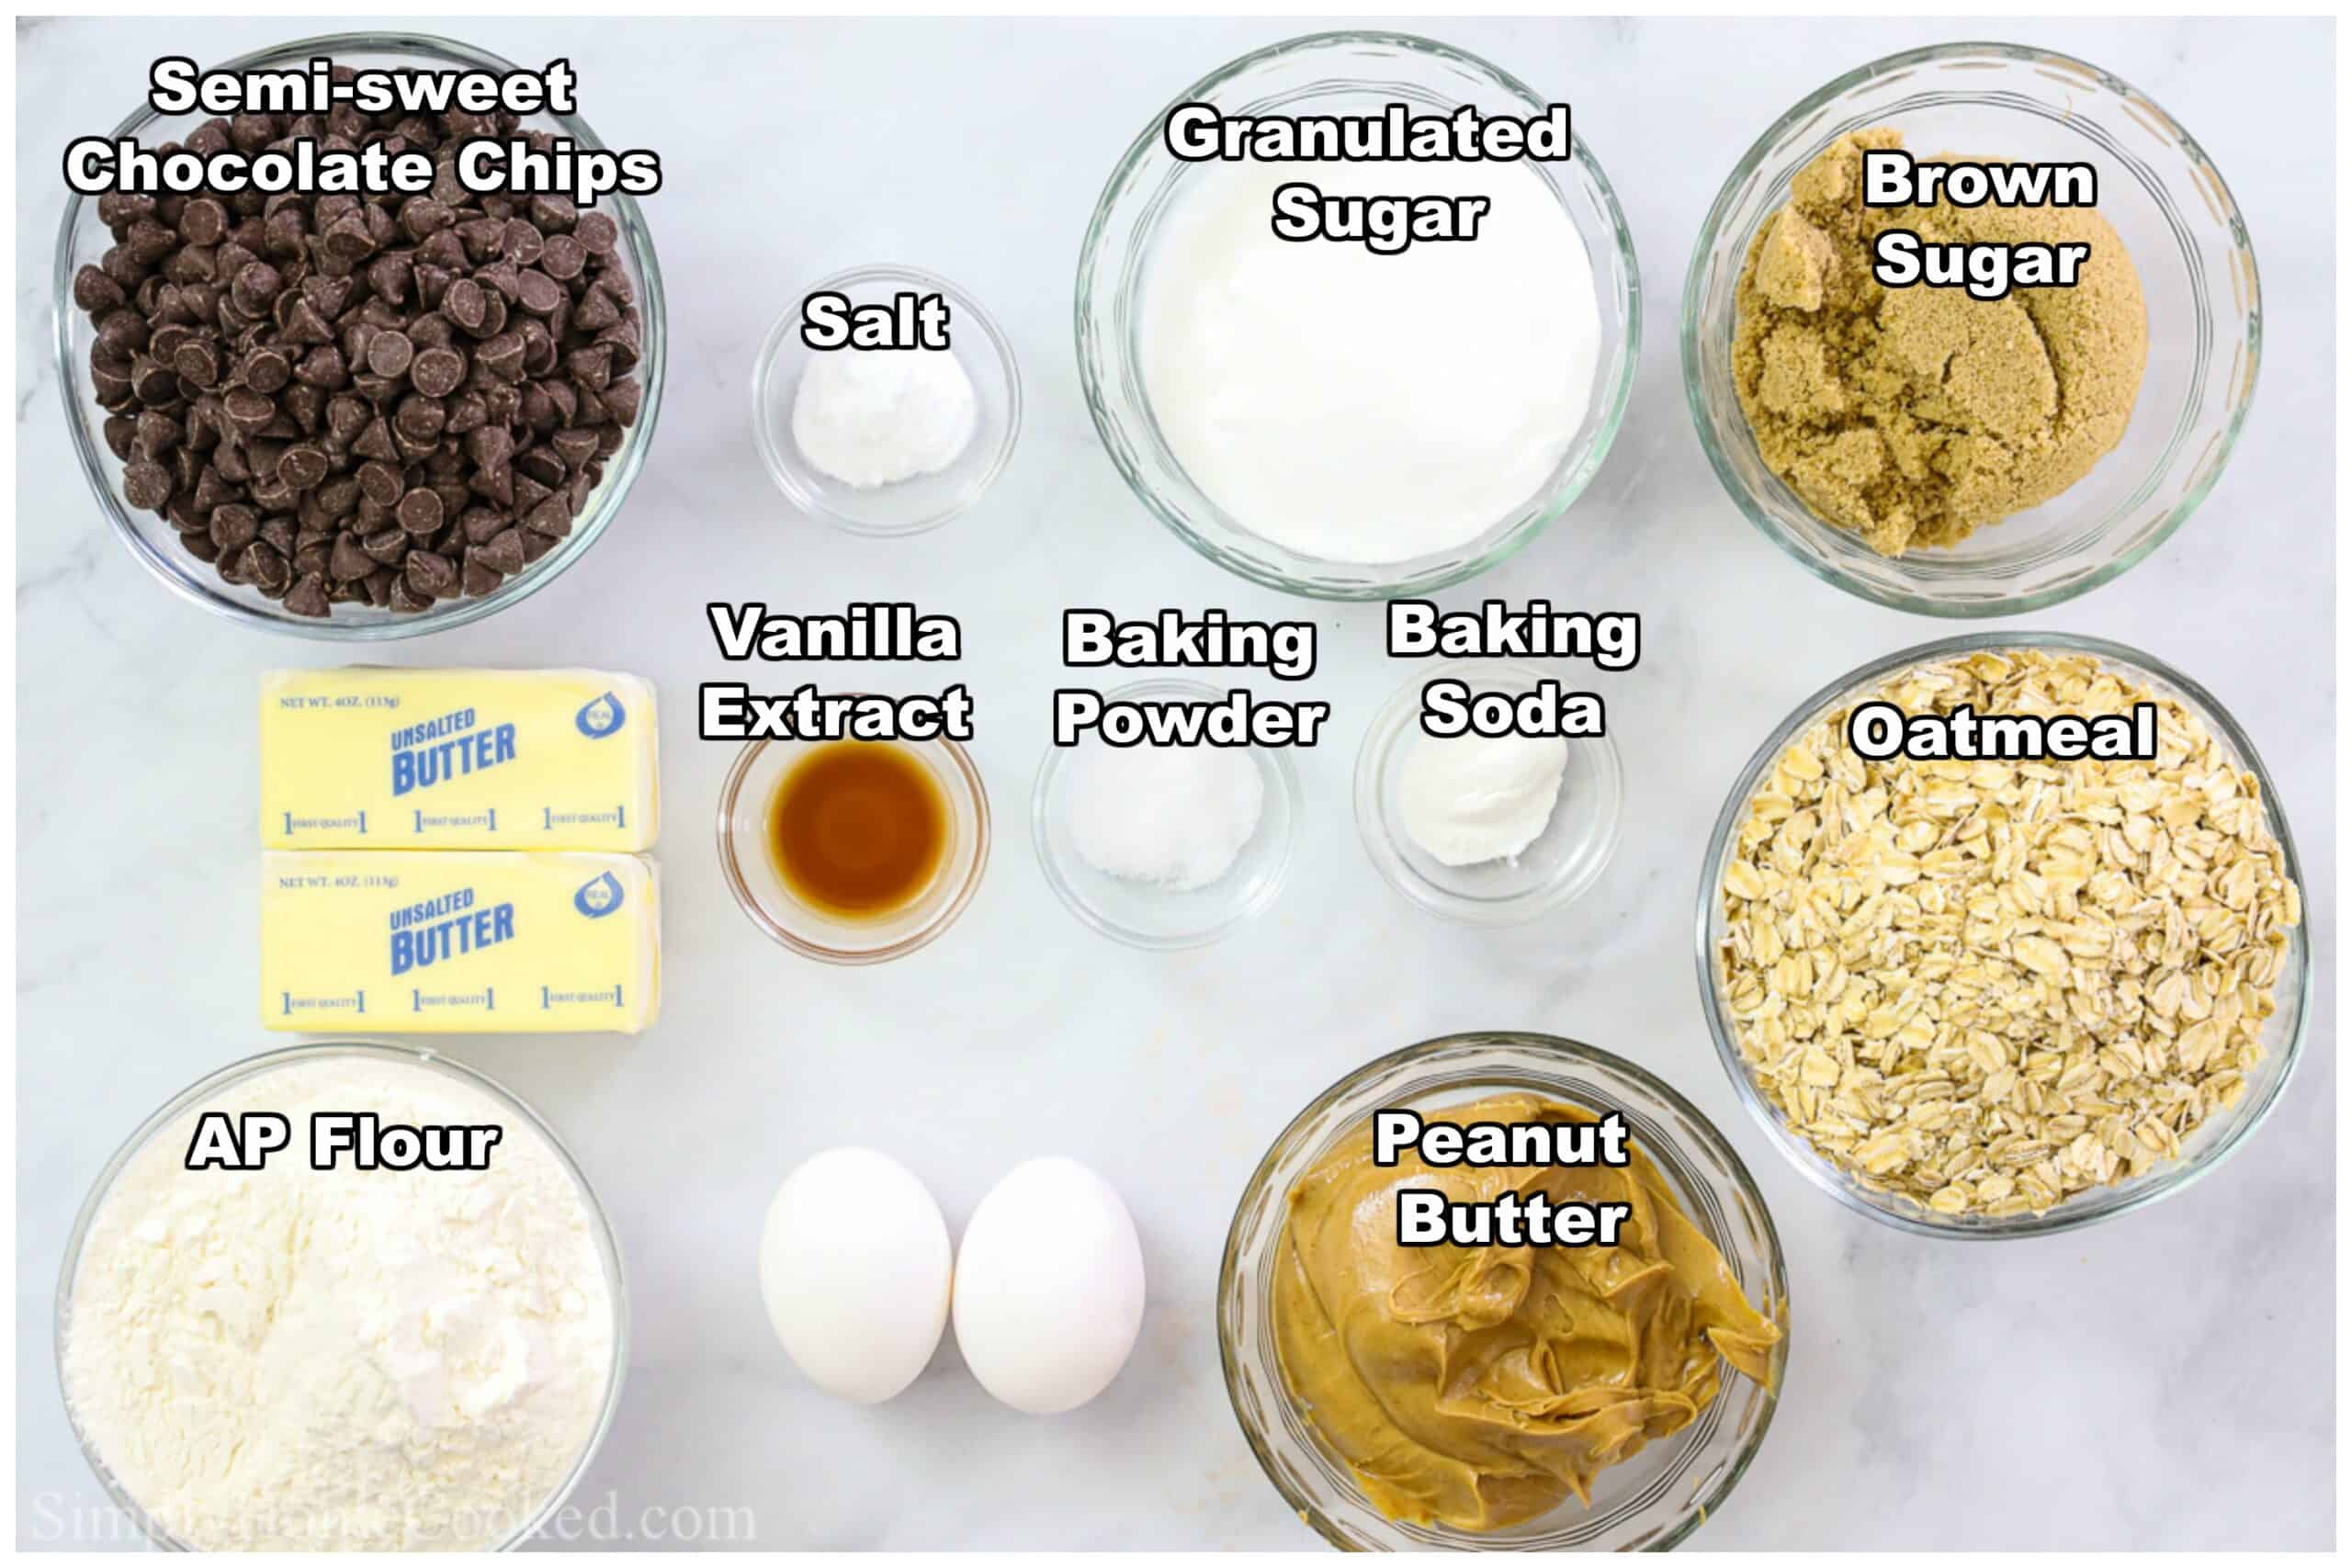 Ingredients for Chewy Peanut Butter Oatmeal Cookies, including flour, granulated sugar, brown sugar, salt, oatmeal, peanut butter, vanilla extract, baking soda, baking powder, butter, and eggs.